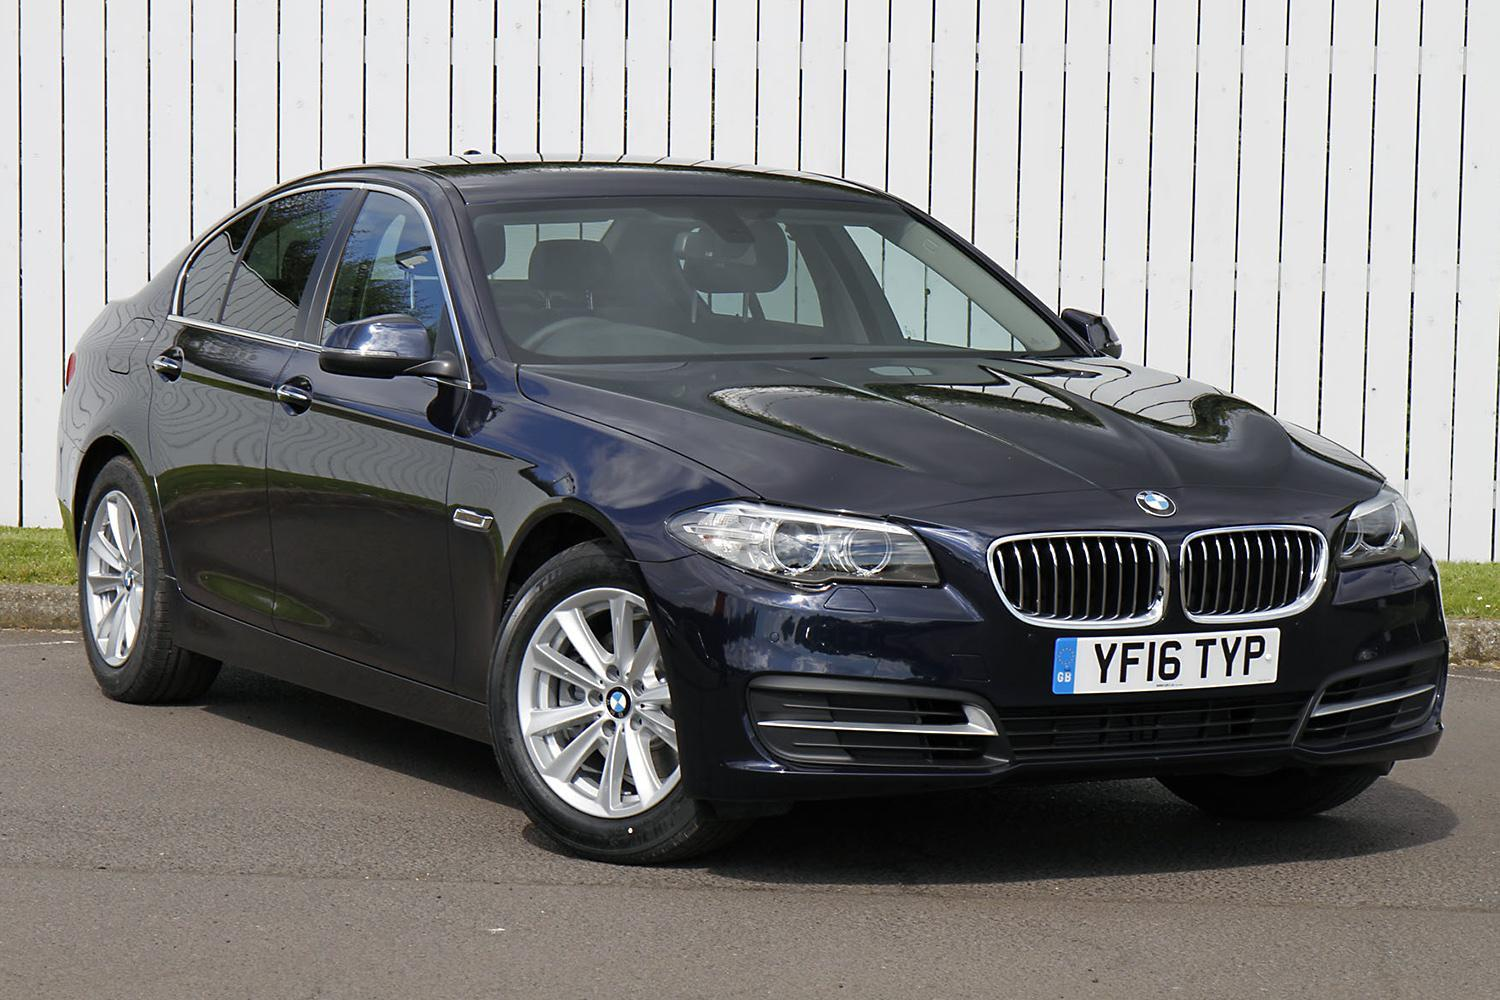 BMW 5 Series Saloon YF16TYP - Image 9